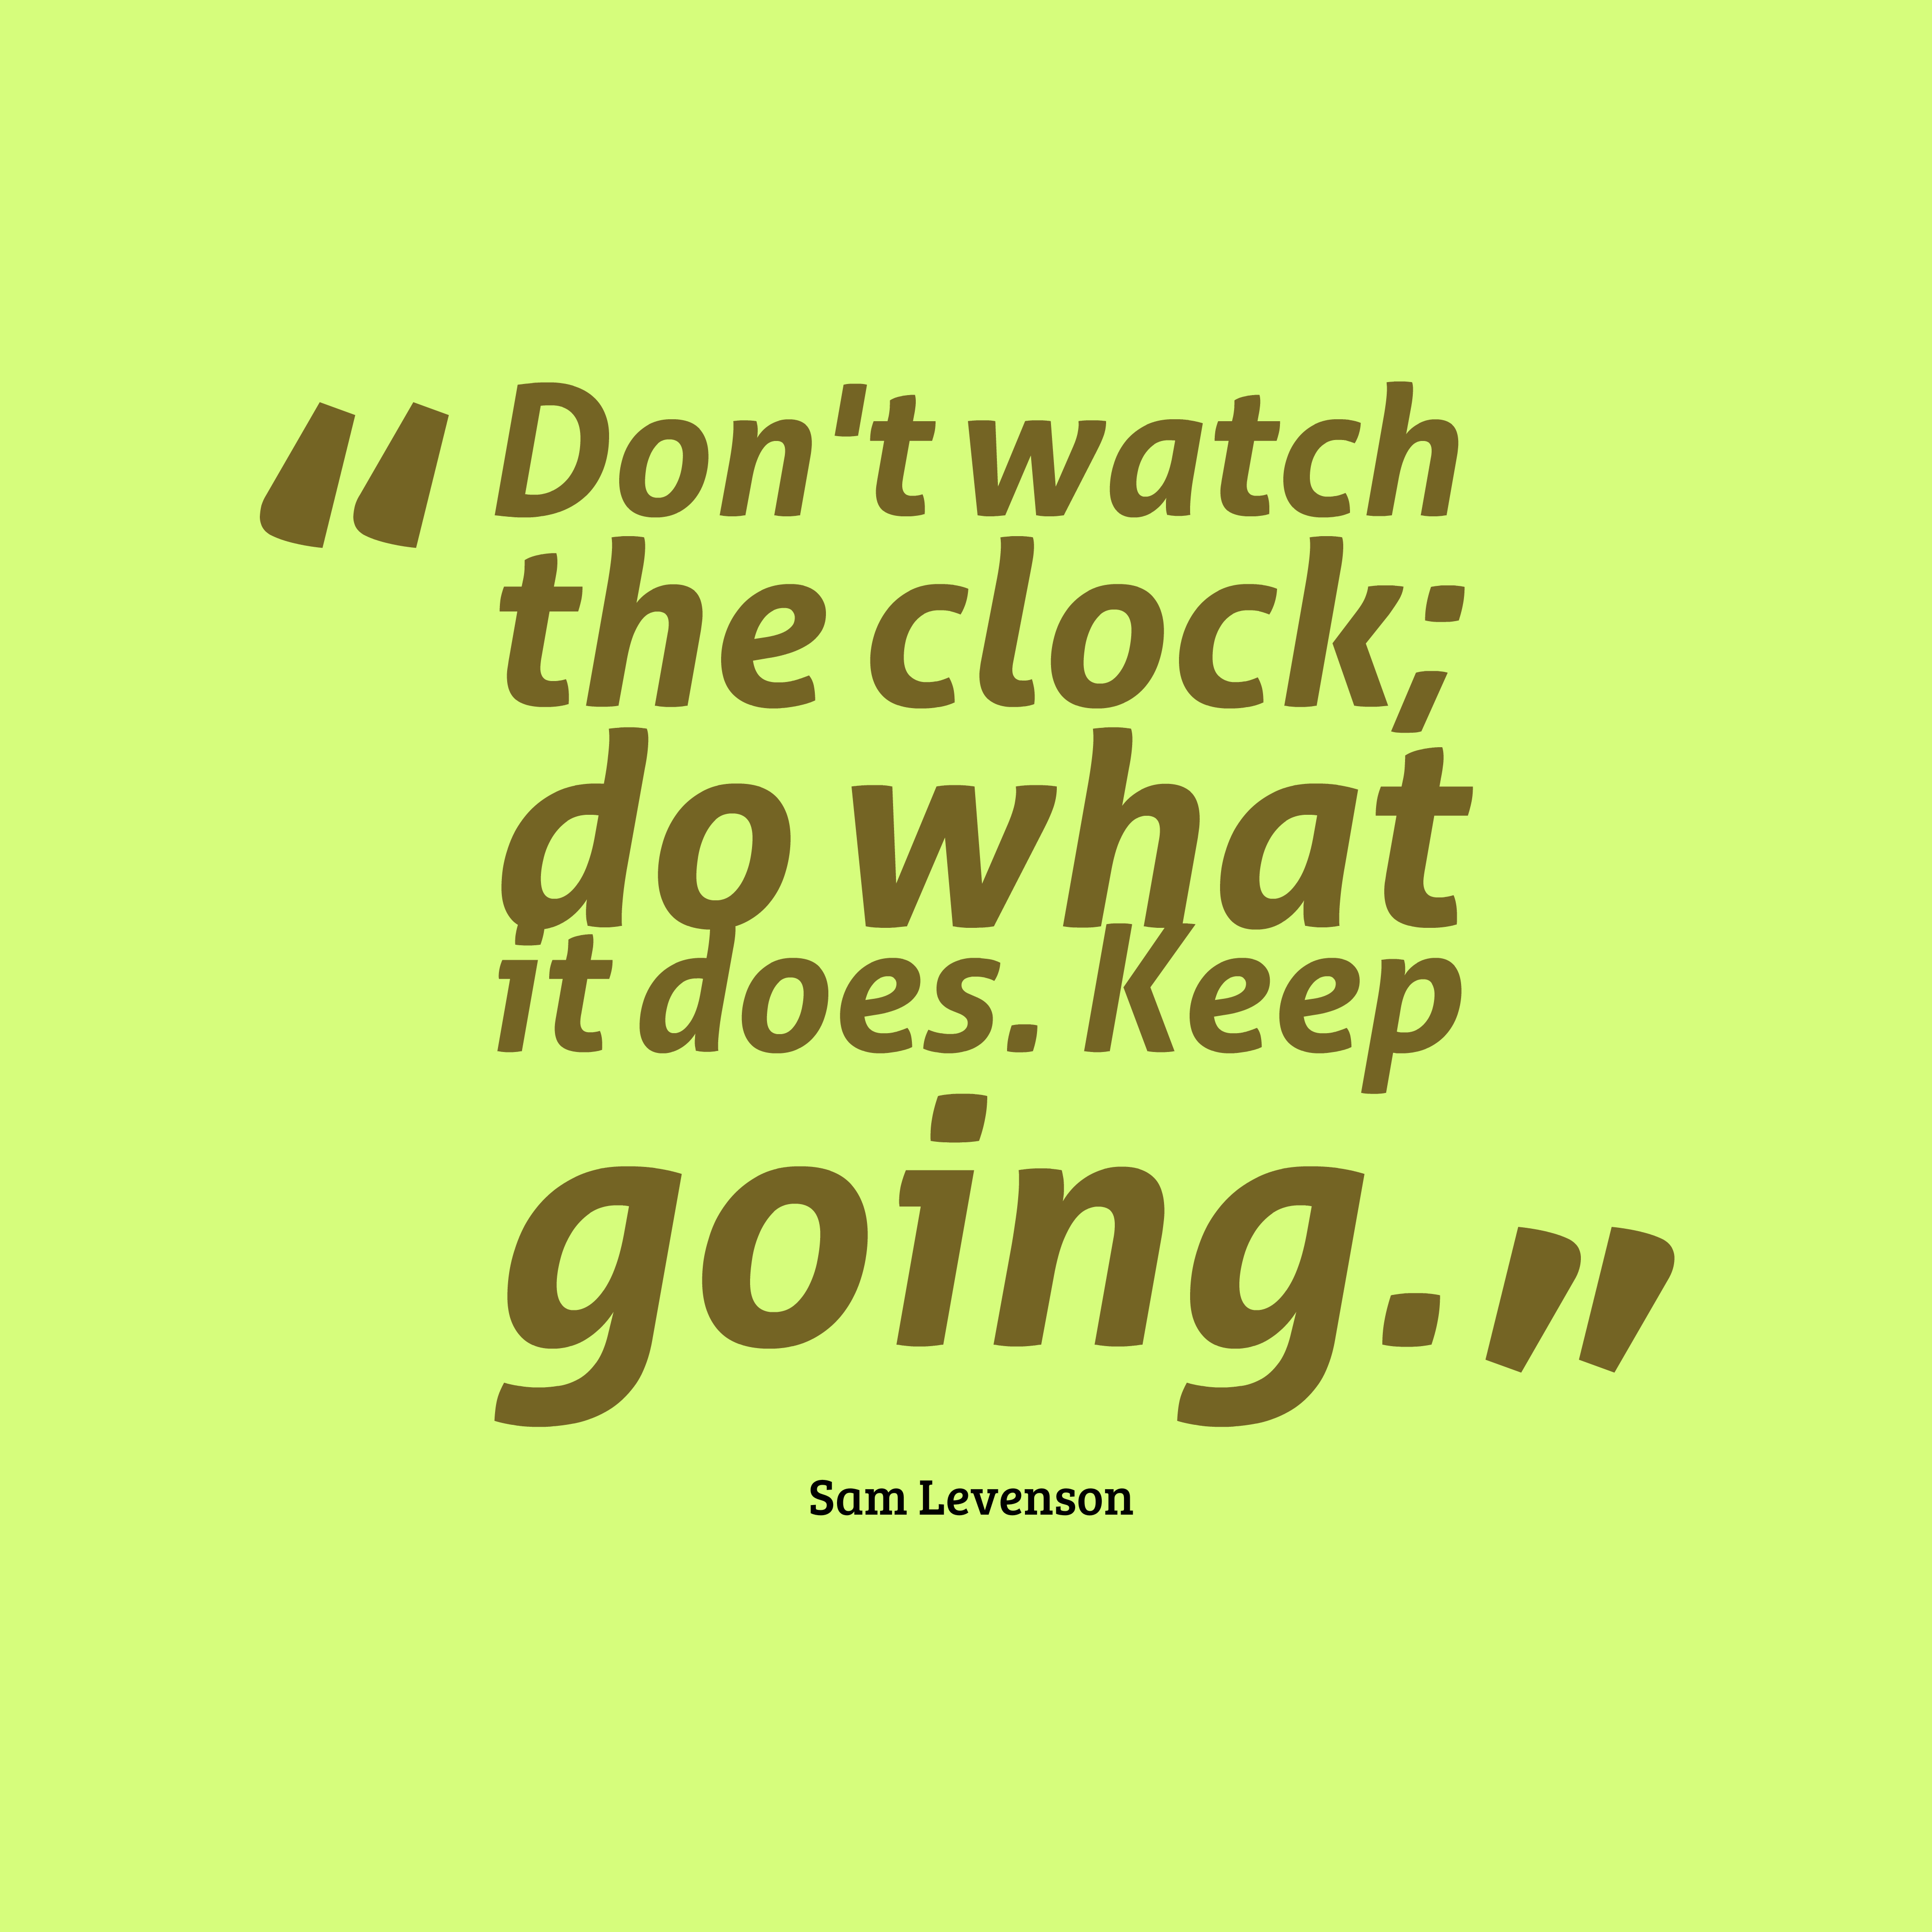 Inspirational Day Quotes: Sam Levenson Quote About Motivational